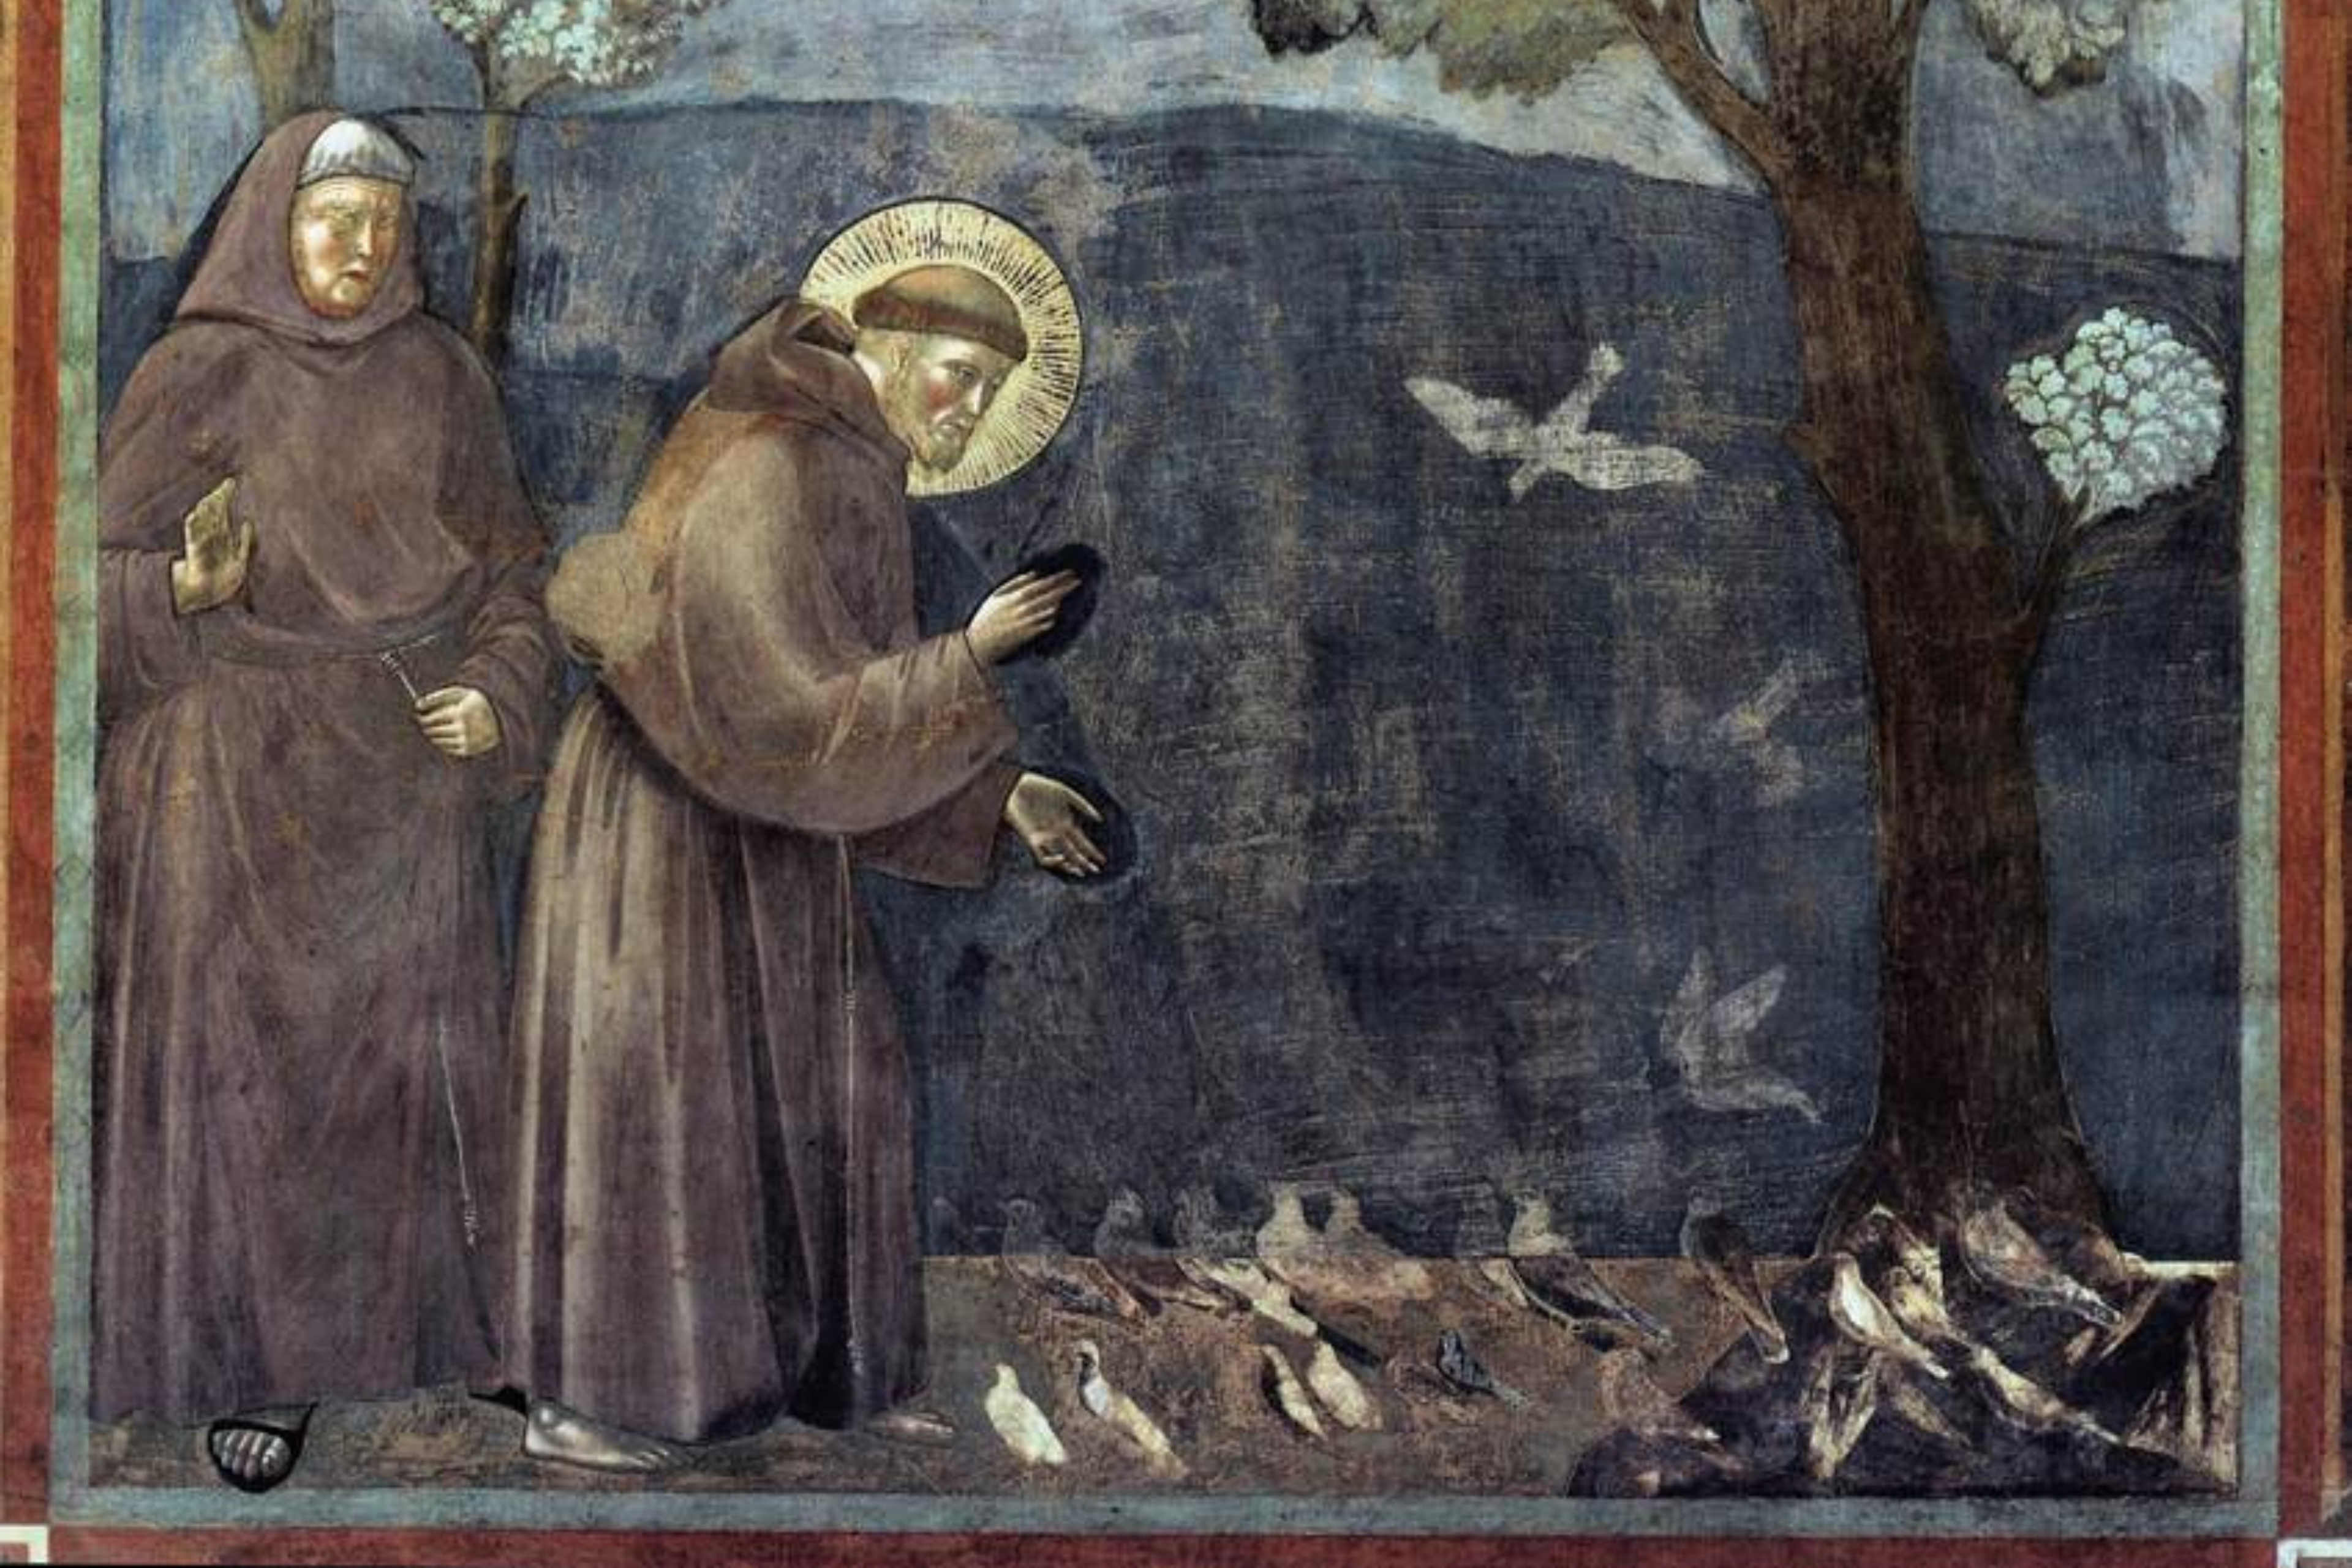 St Francis and Care for Creation